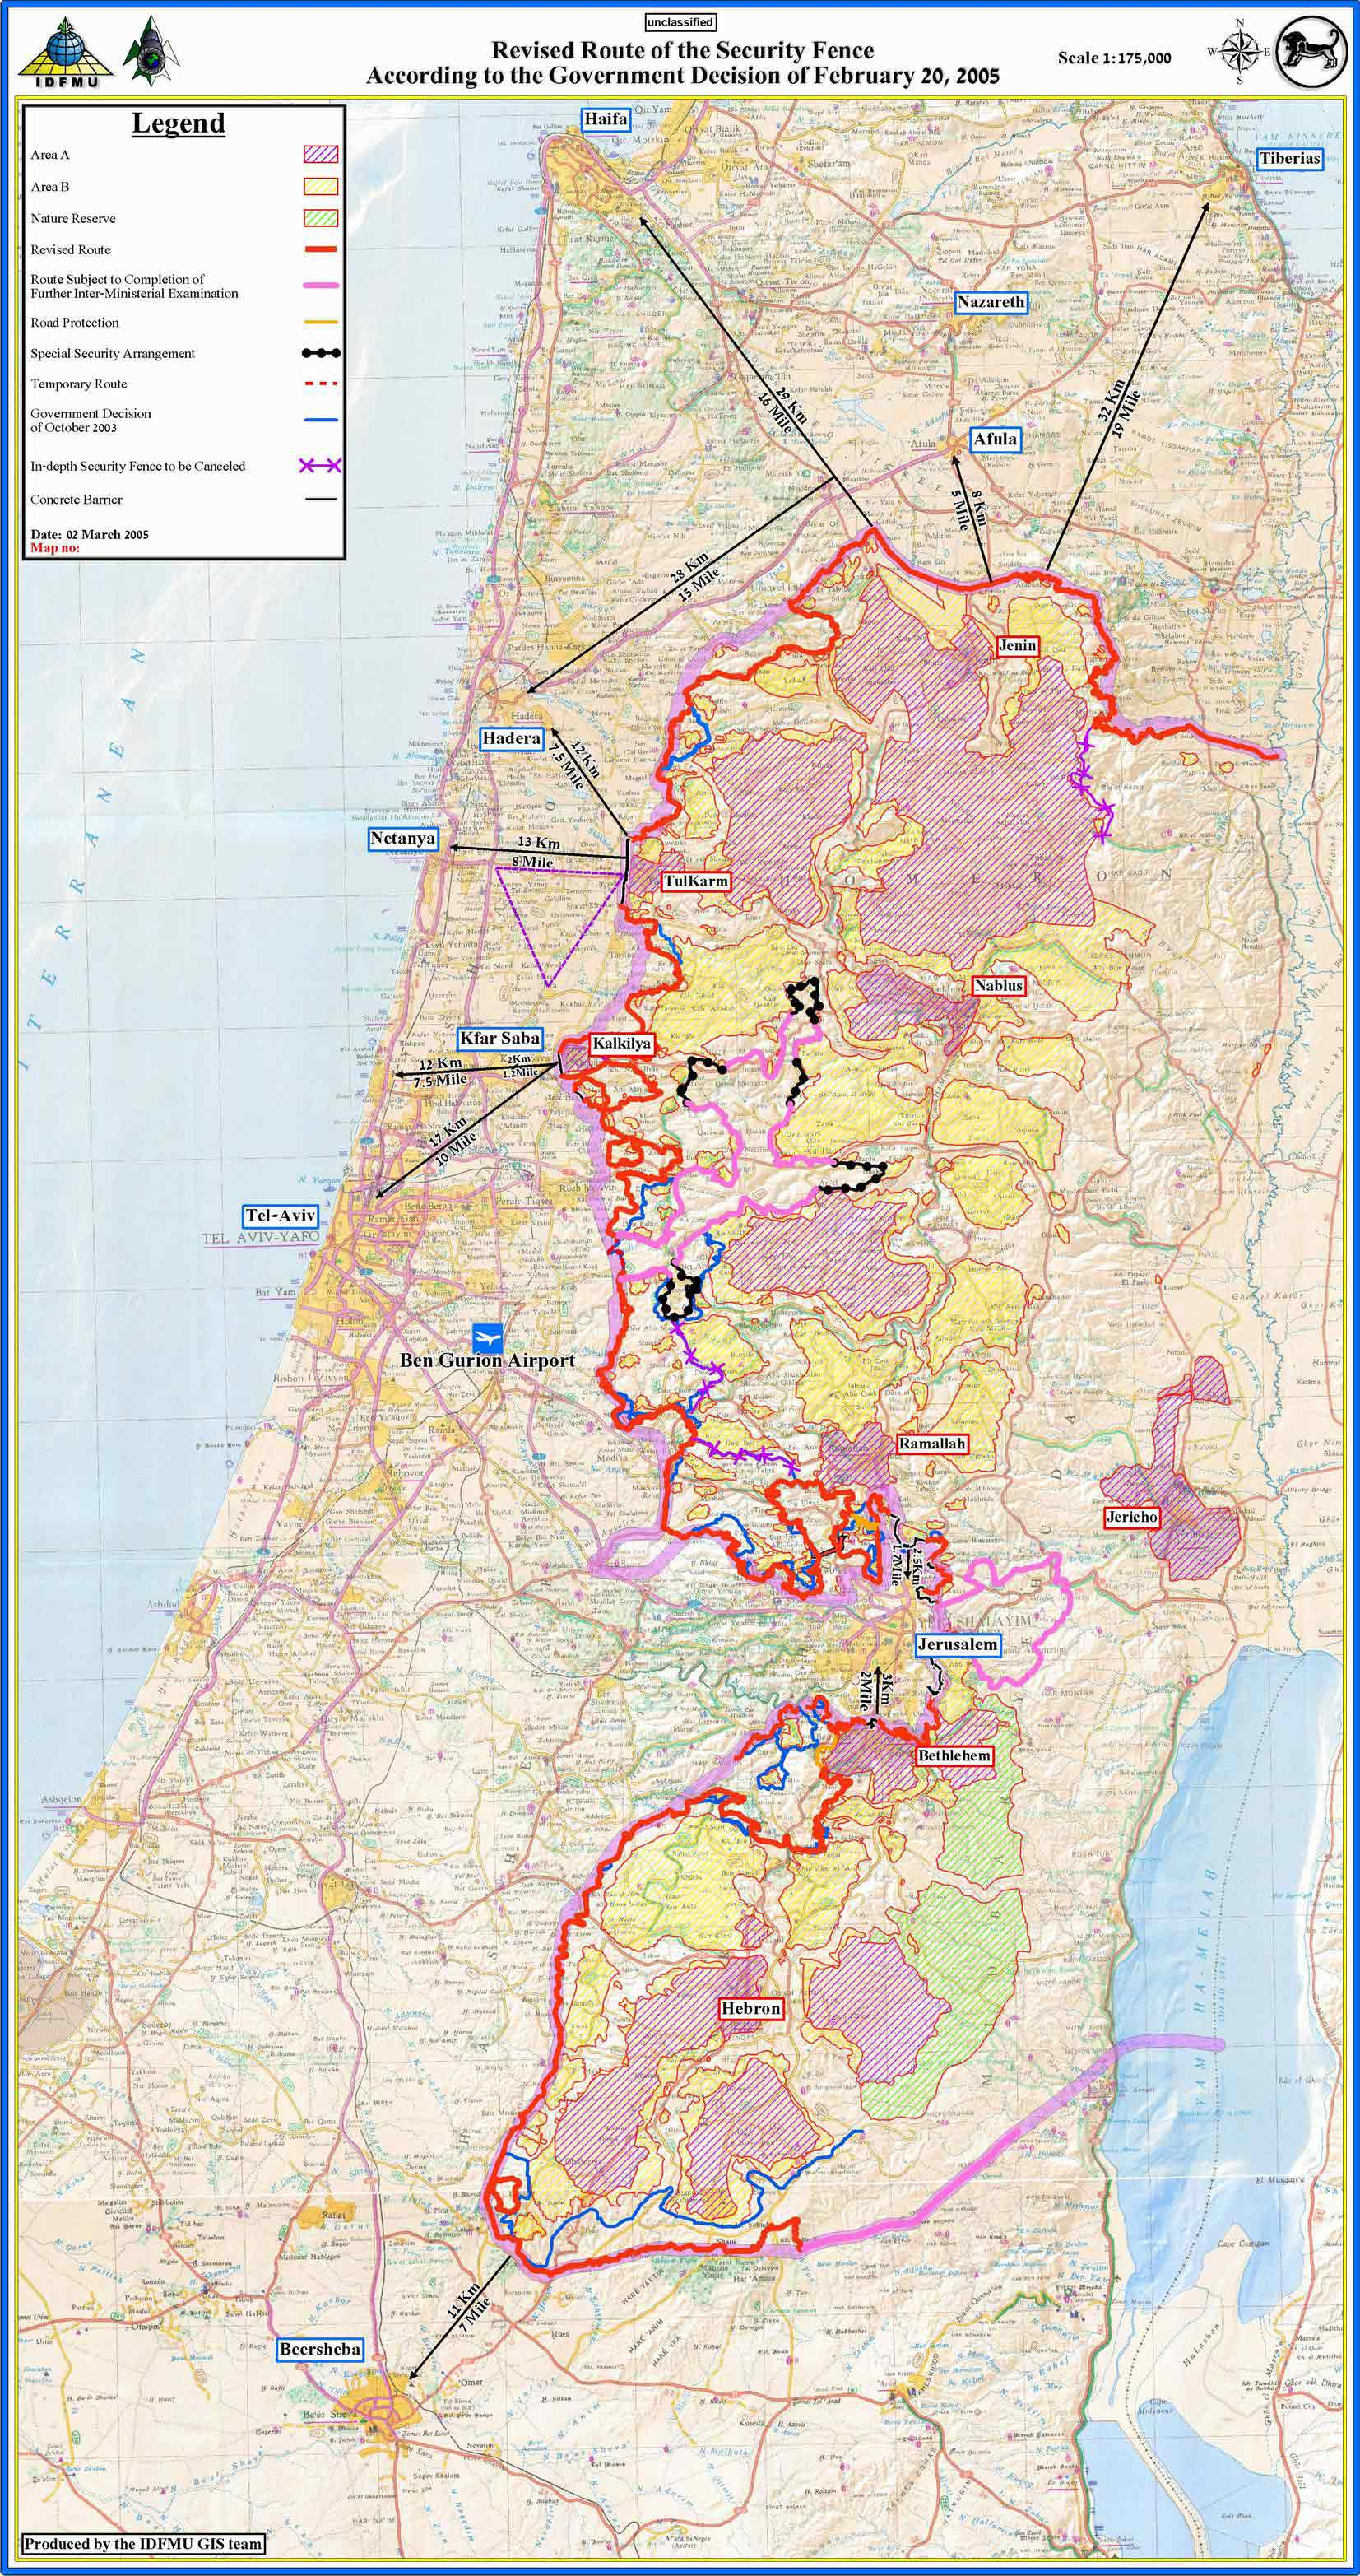 Background Overview Of Israels Security Barriers Alarm System Circuit 5 Zone The Complete Route